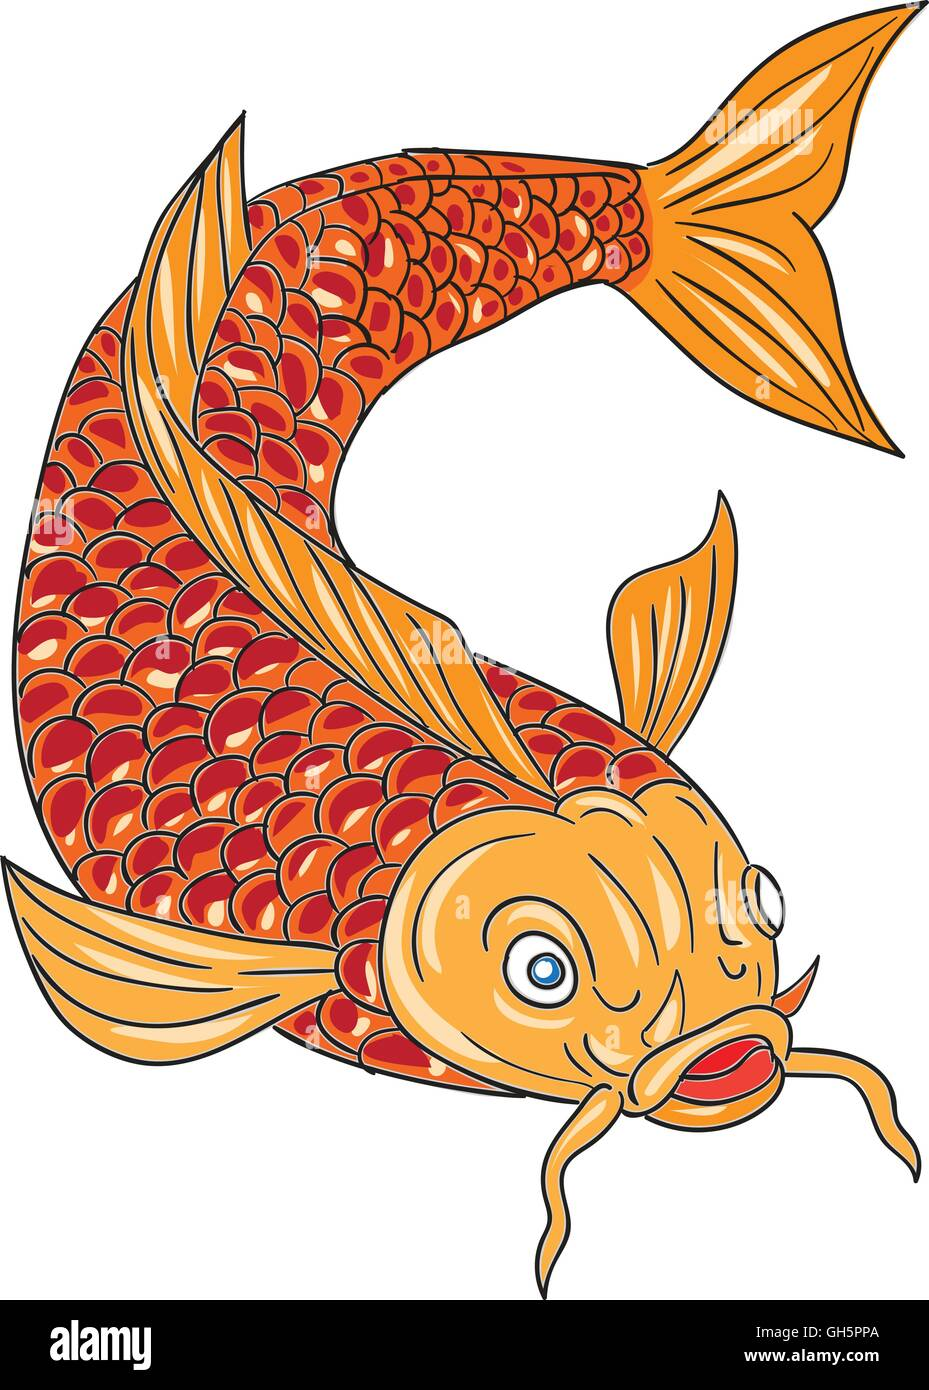 Fish Swimming Stock Vector Images - Alamy